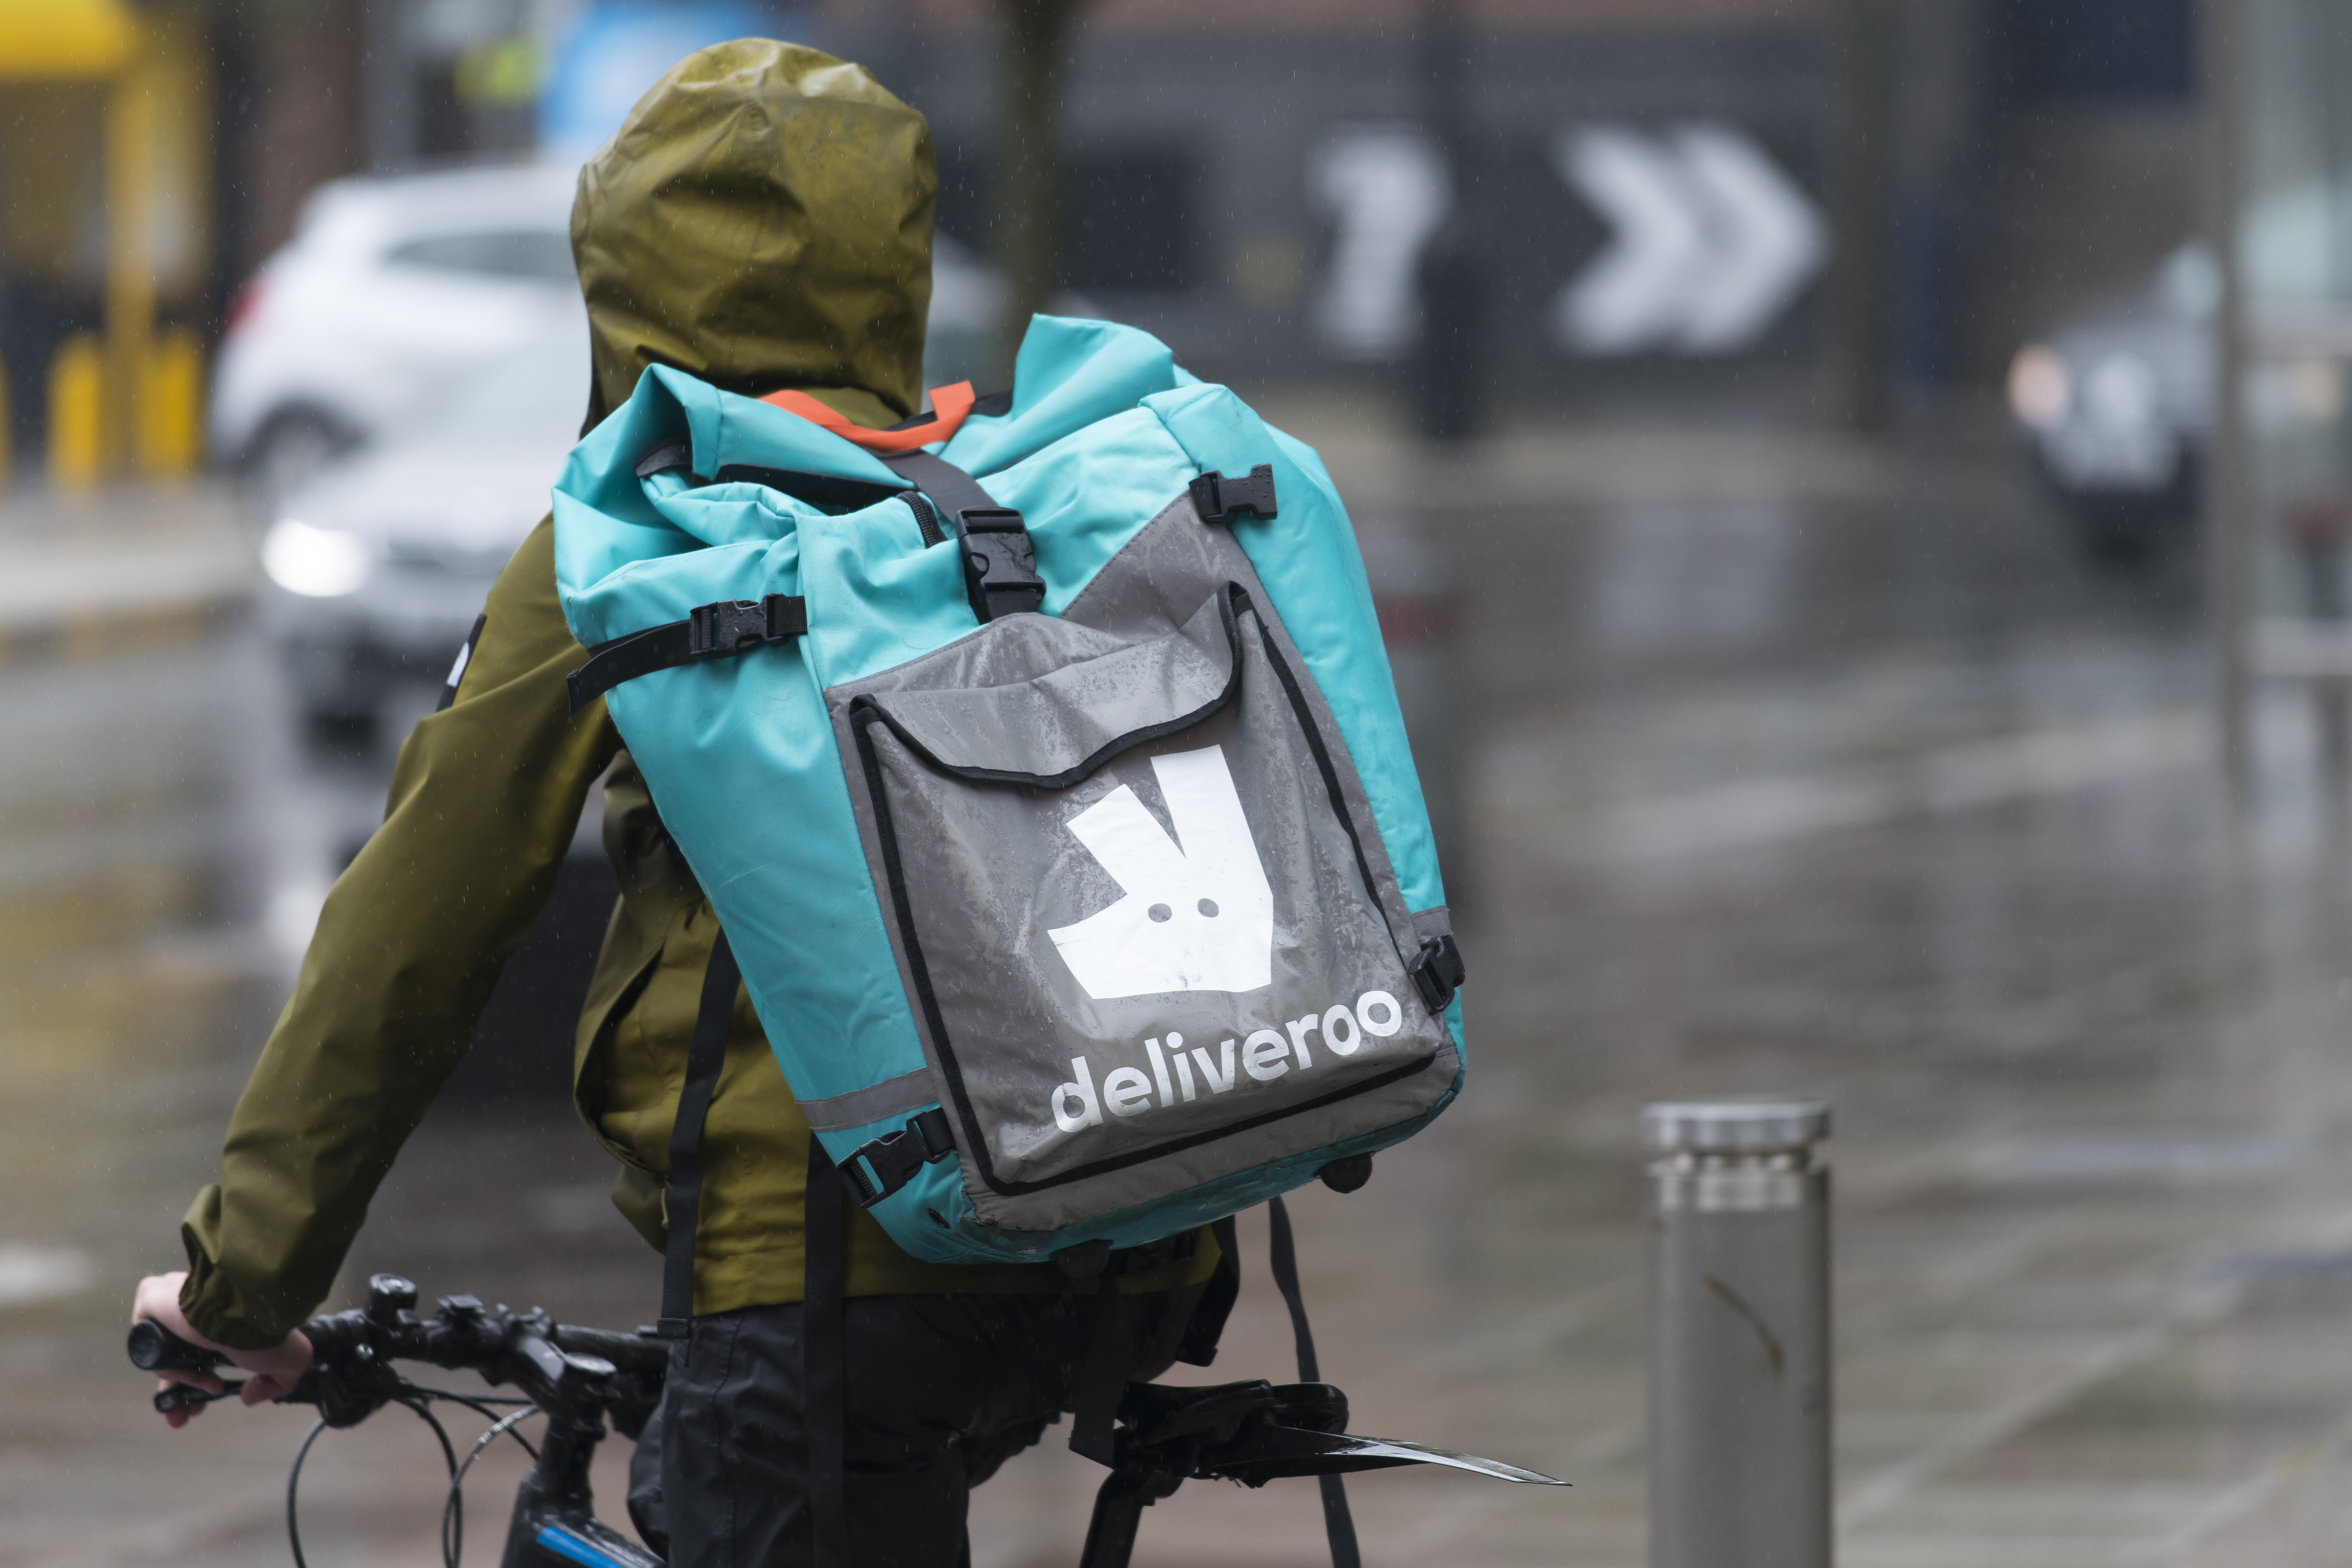 Delivery Giant Deliveroo Tests Out Supermarket Food Delivery